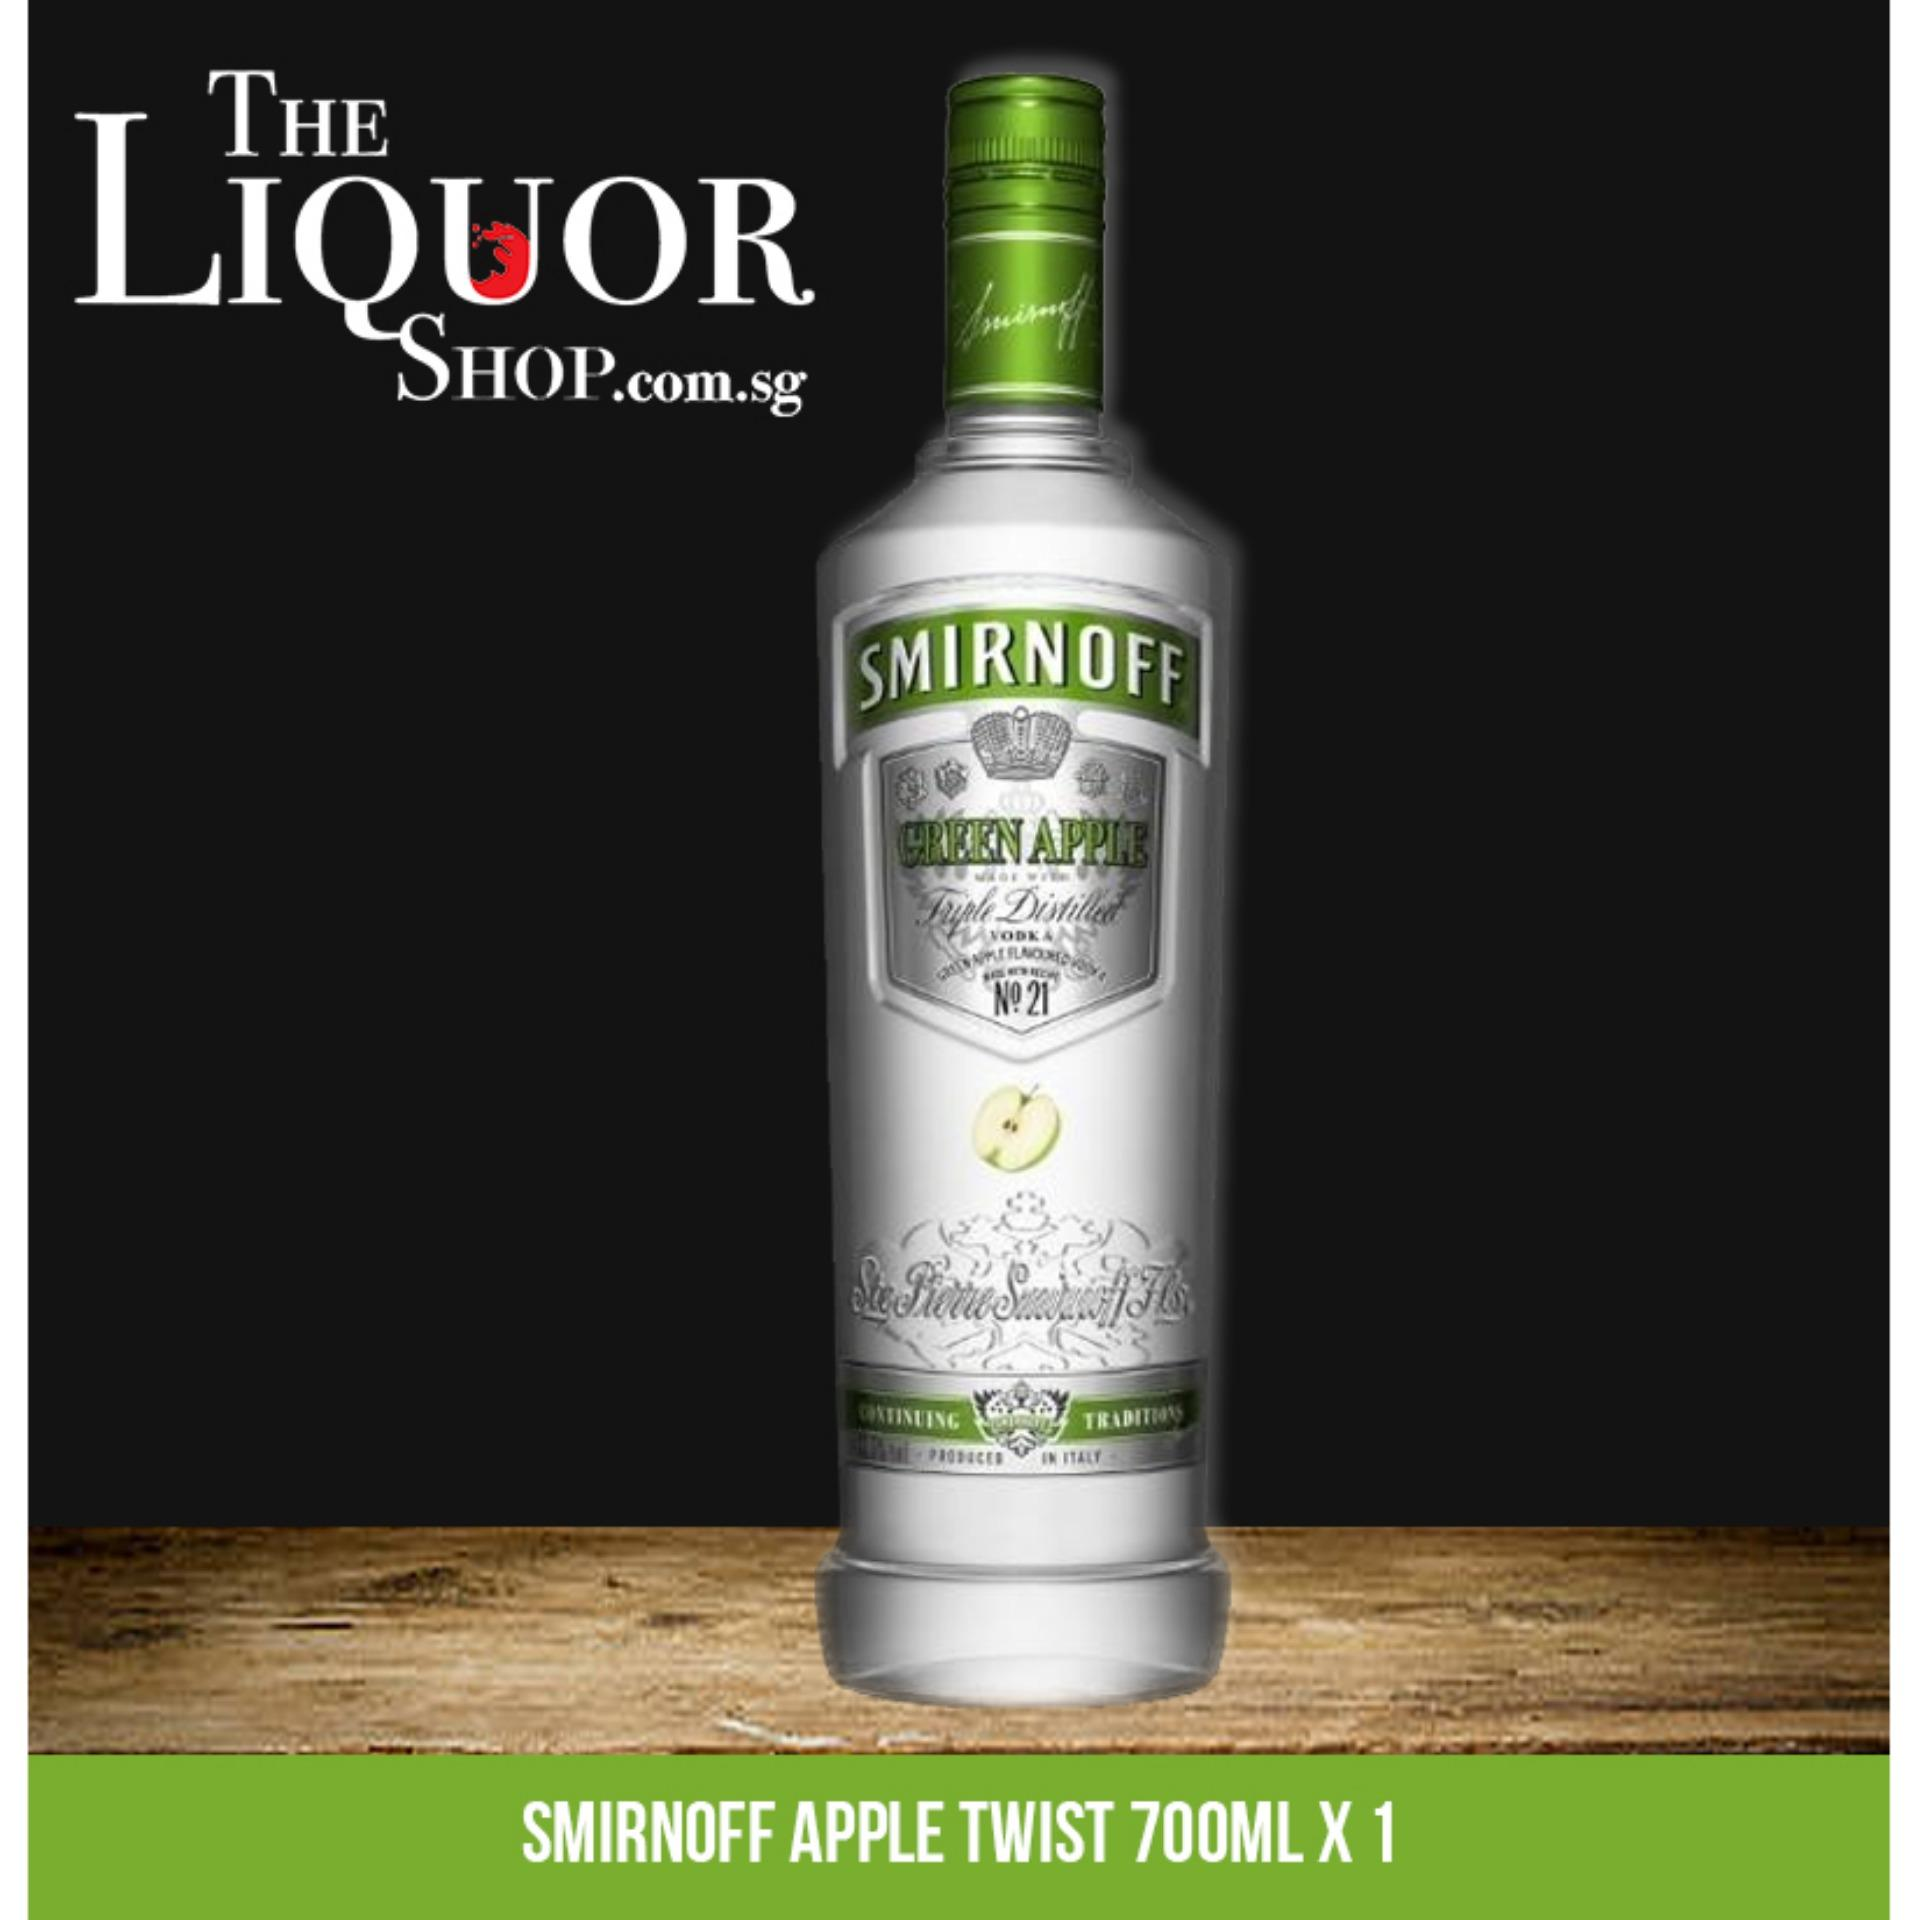 Smirnoff Apple Twist 700ml X 1 By The Liquor Shop.